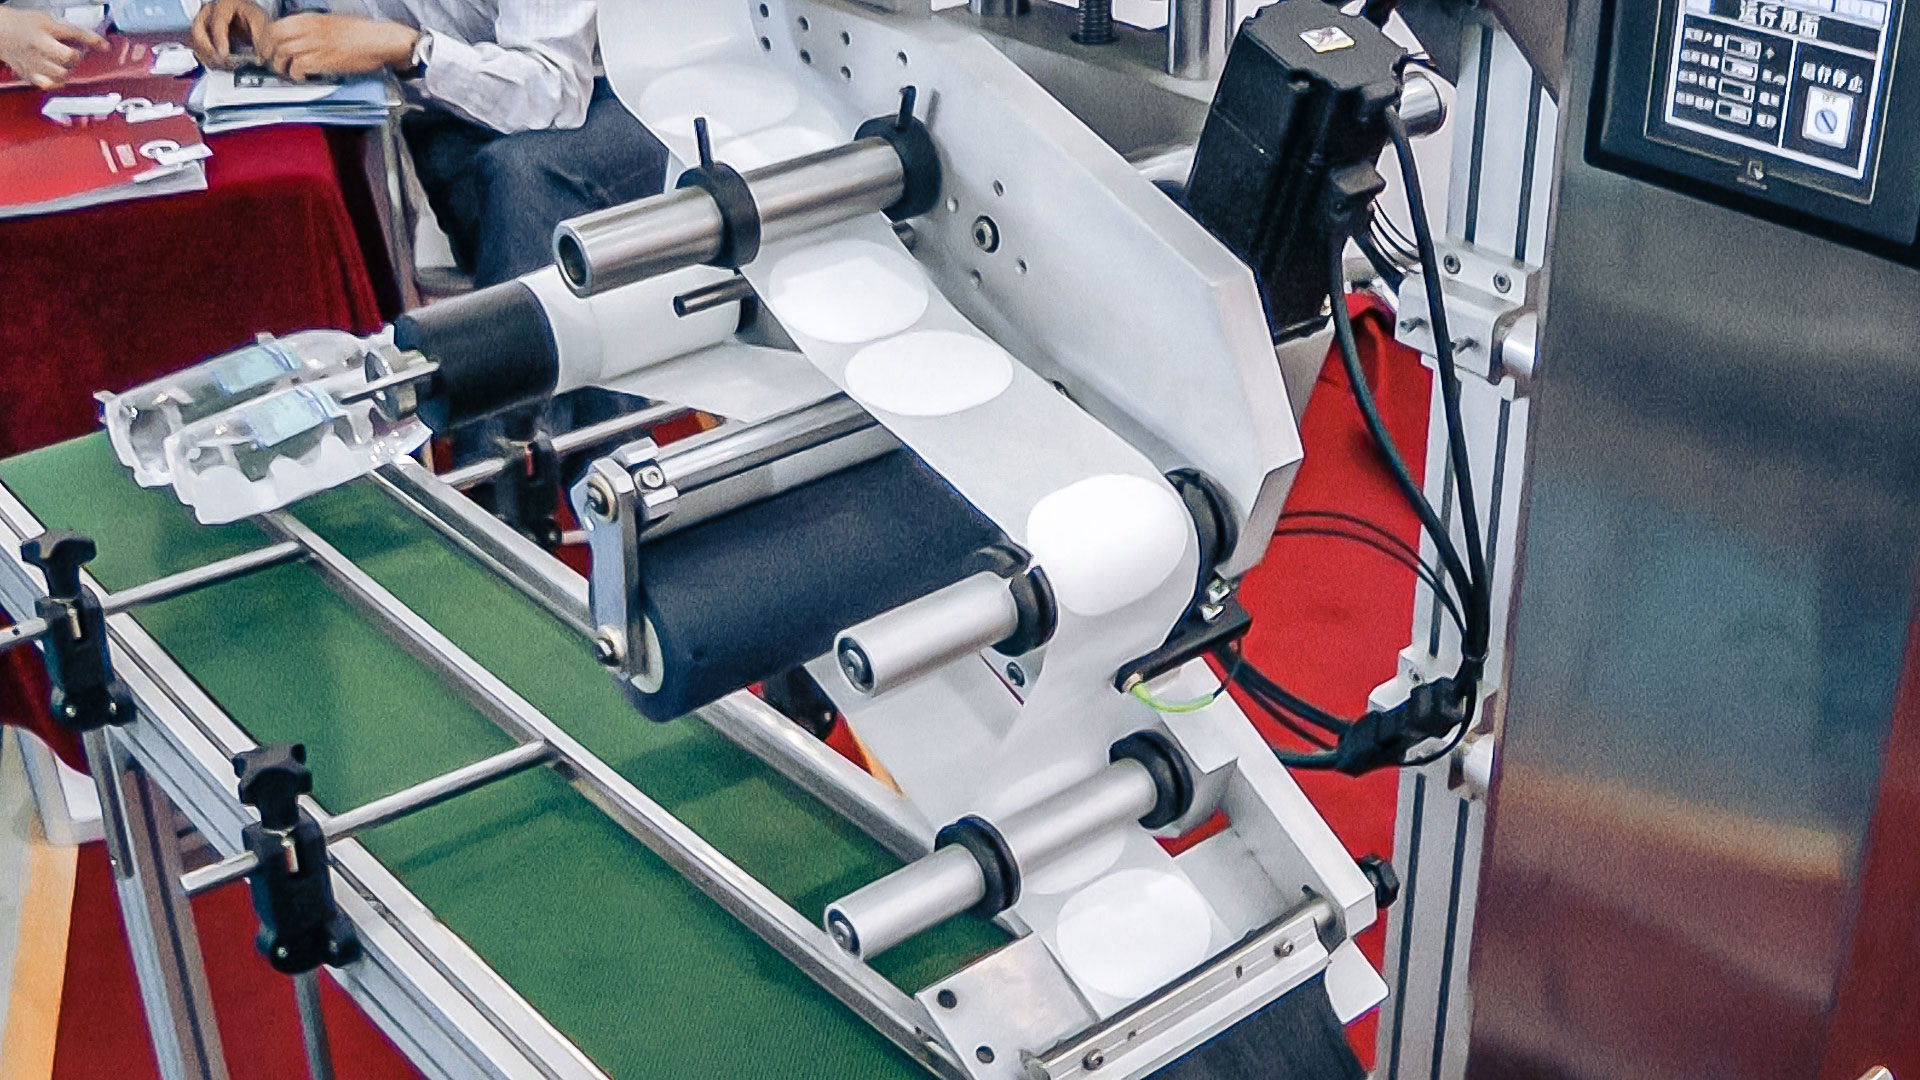 Automatic equipment for self-adhesive labels on top of pharmaceutical production